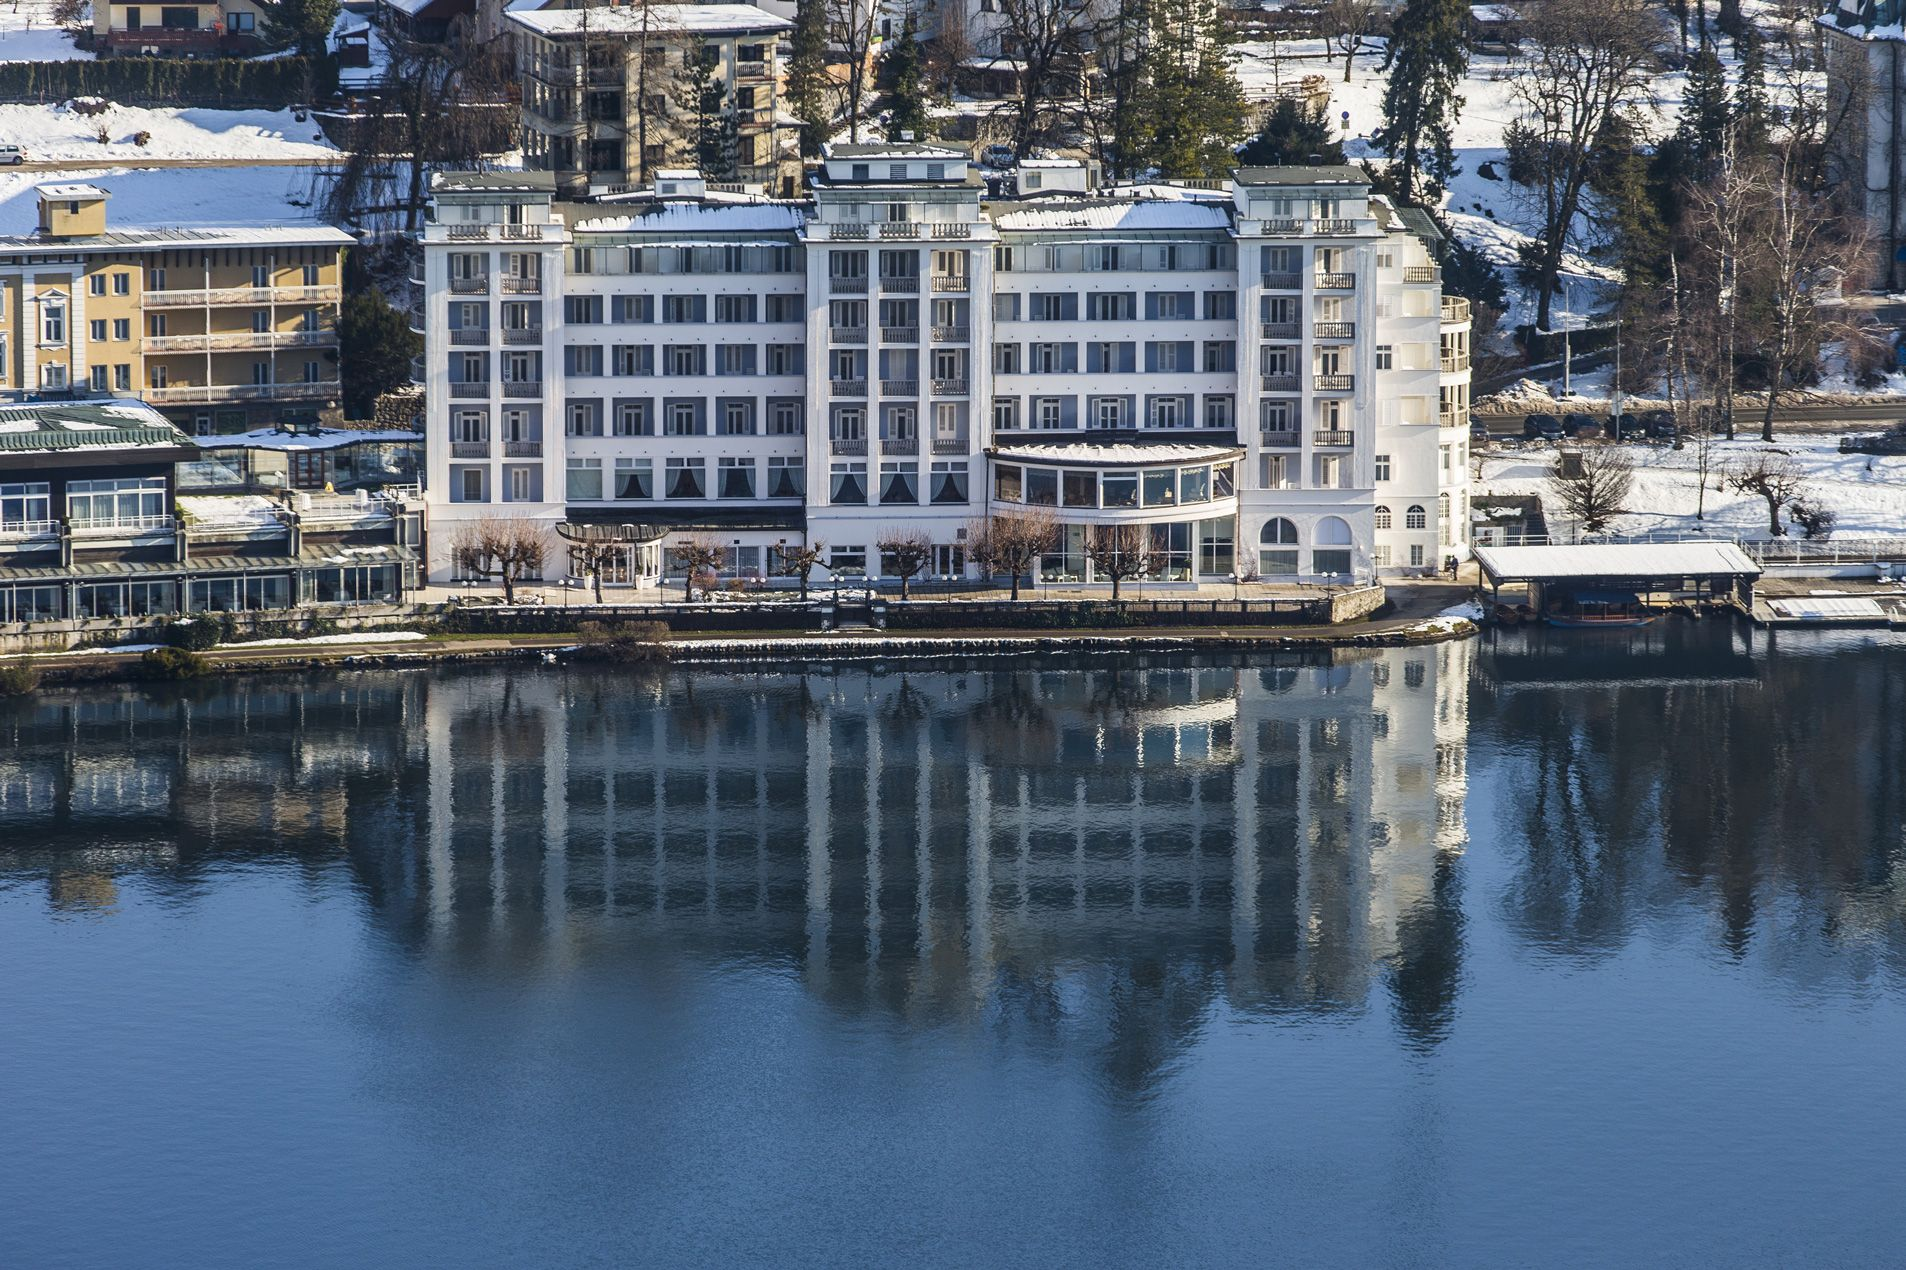 Bled_Grand-Hotel-Toplice